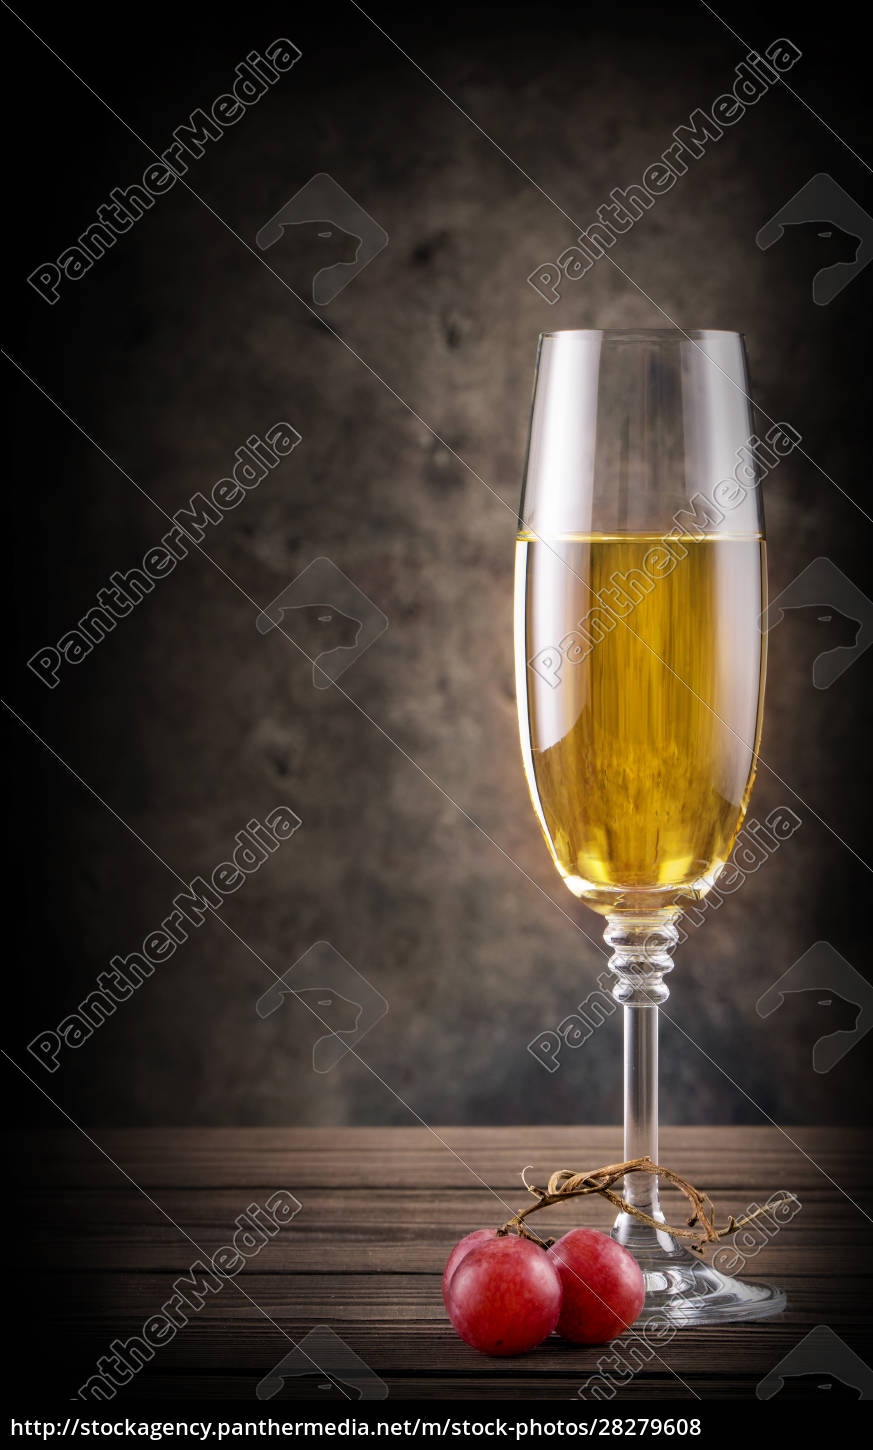 narrow, glass, of, white, wine - 28279608